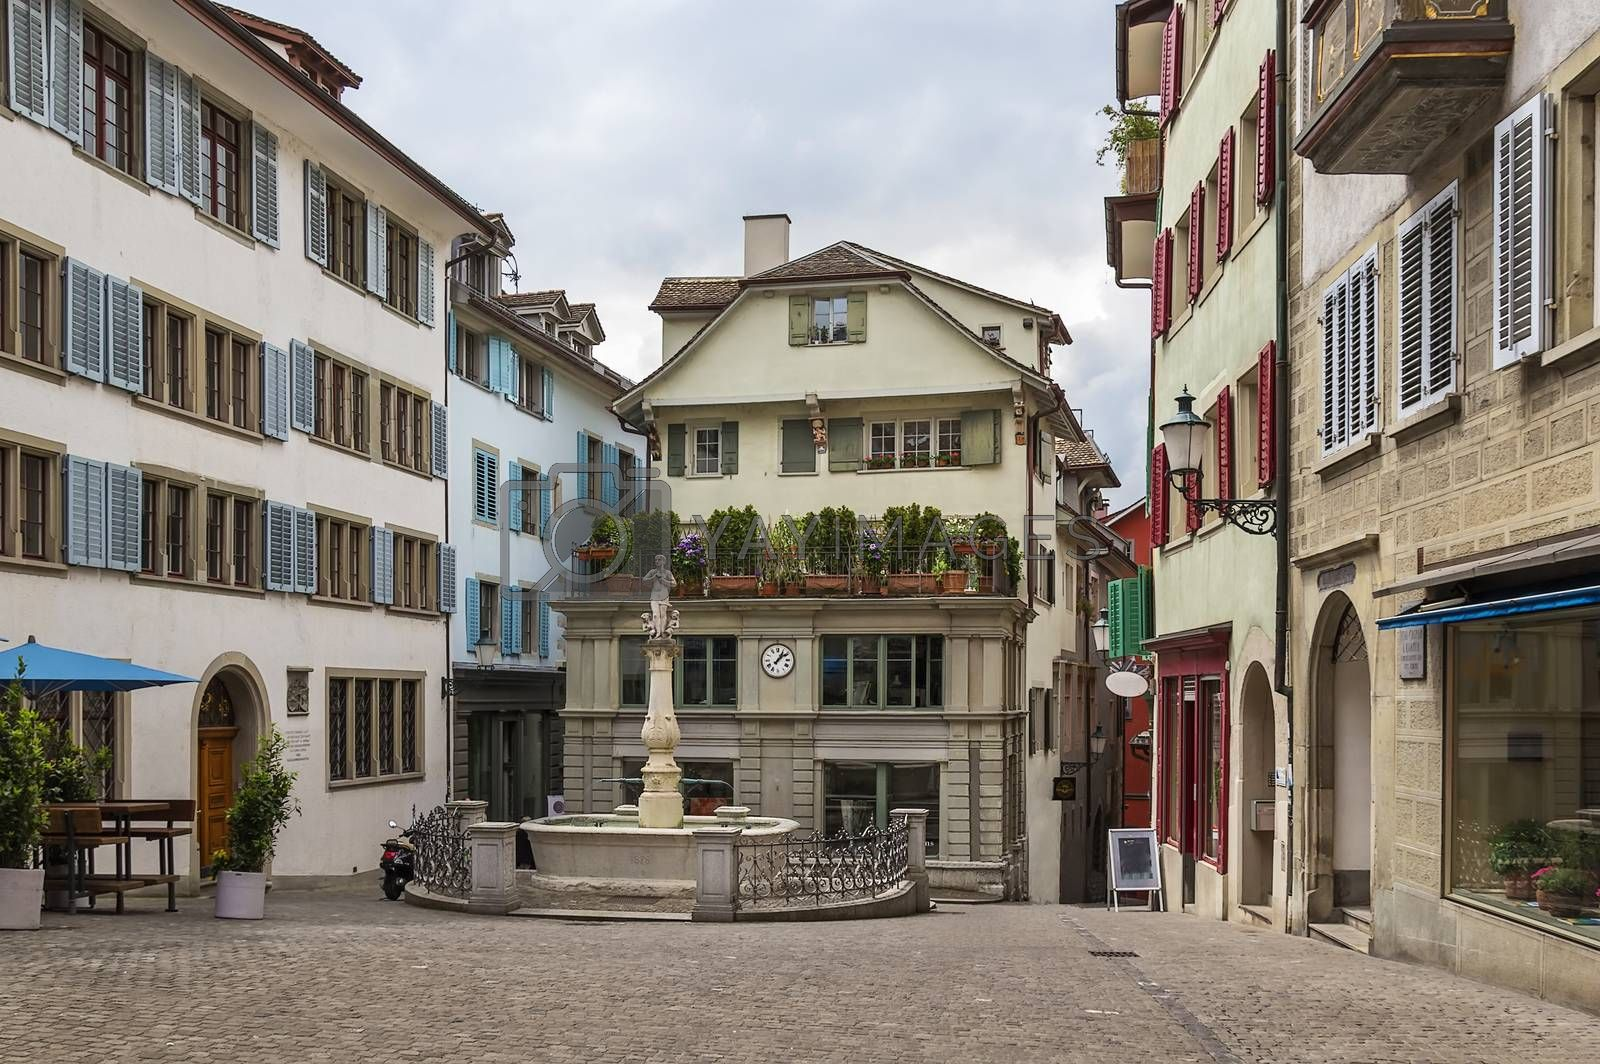 Square in Zurich by borisb17